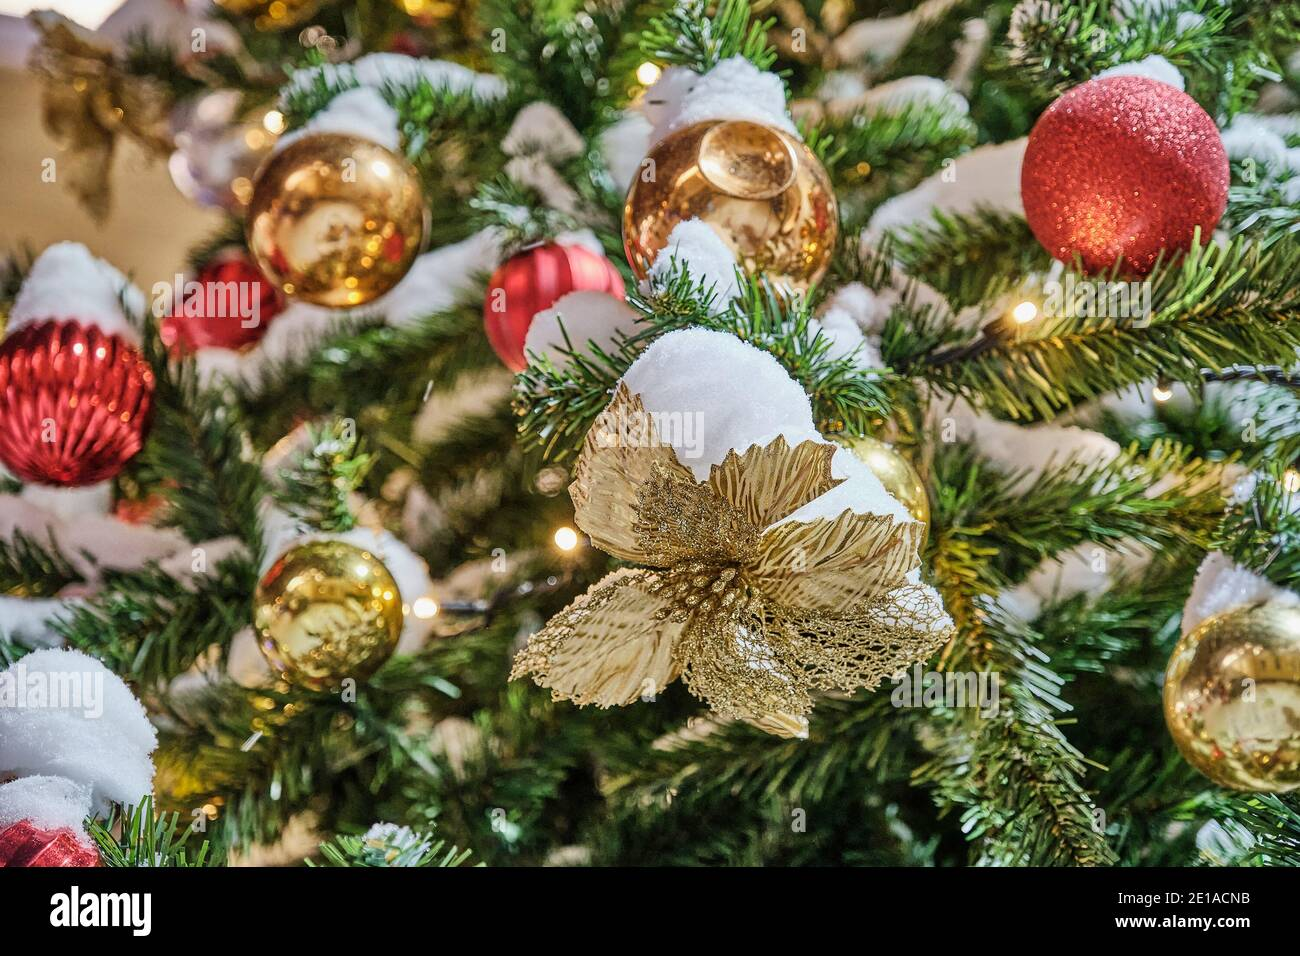 Beautiful Gold And Red Christmas Decorations On An Artificial Christmas Tree Sprinkled With Snow Close Up Stock Photo Alamy